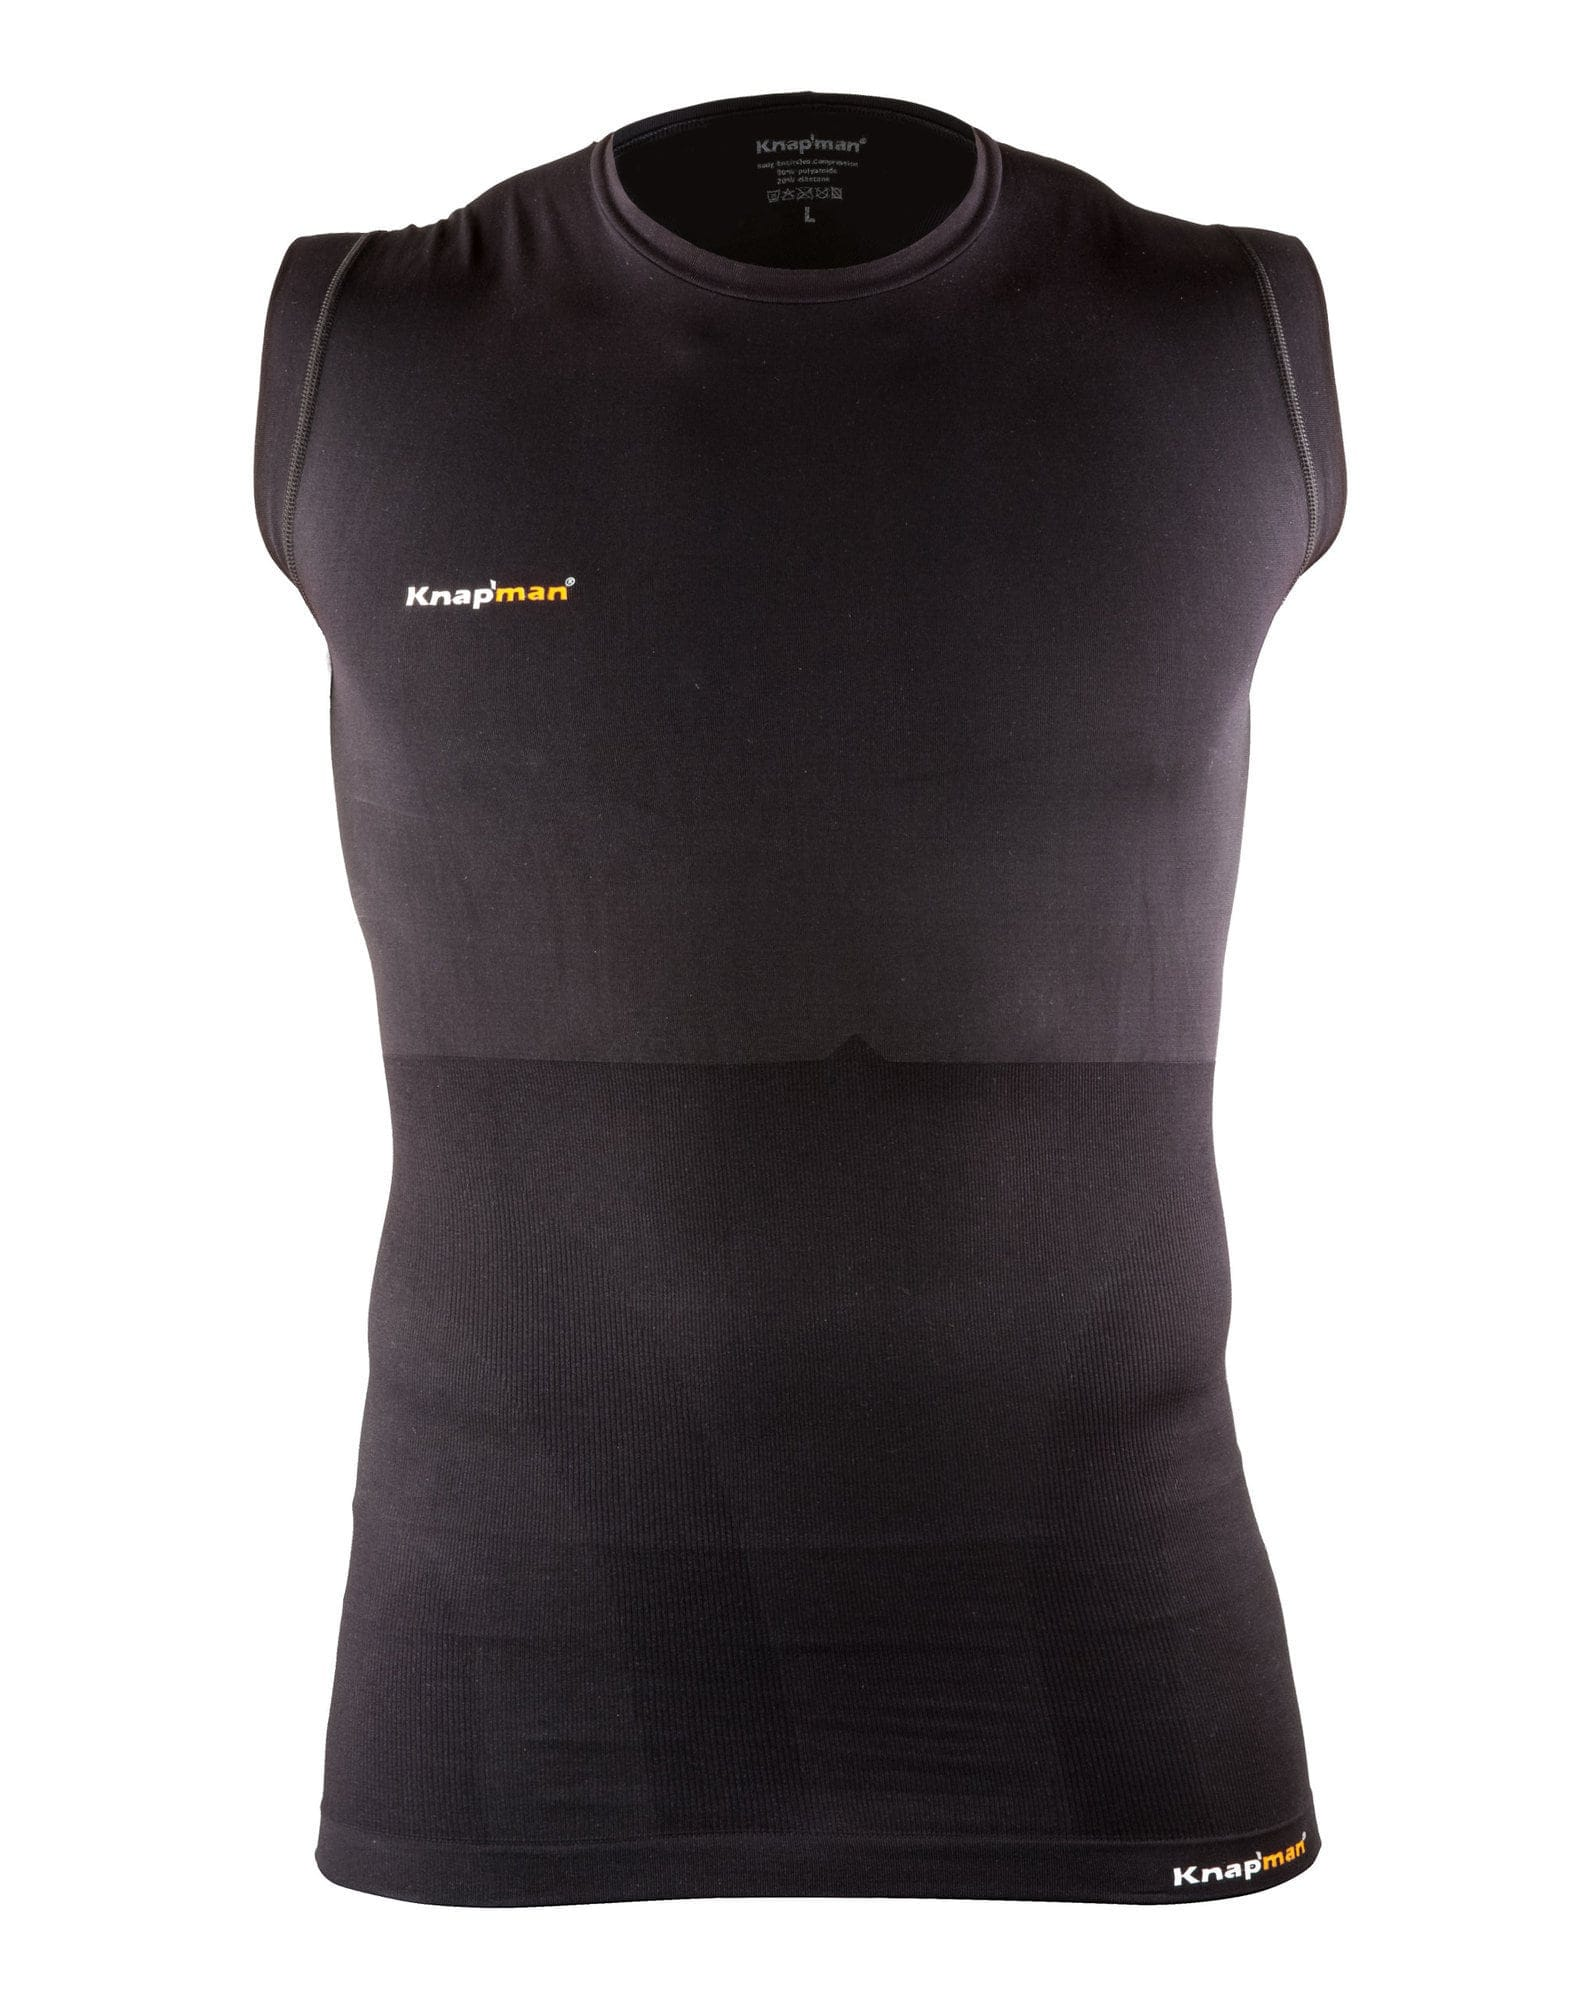 Knap'man Sleeveless Compressieshirt zwart